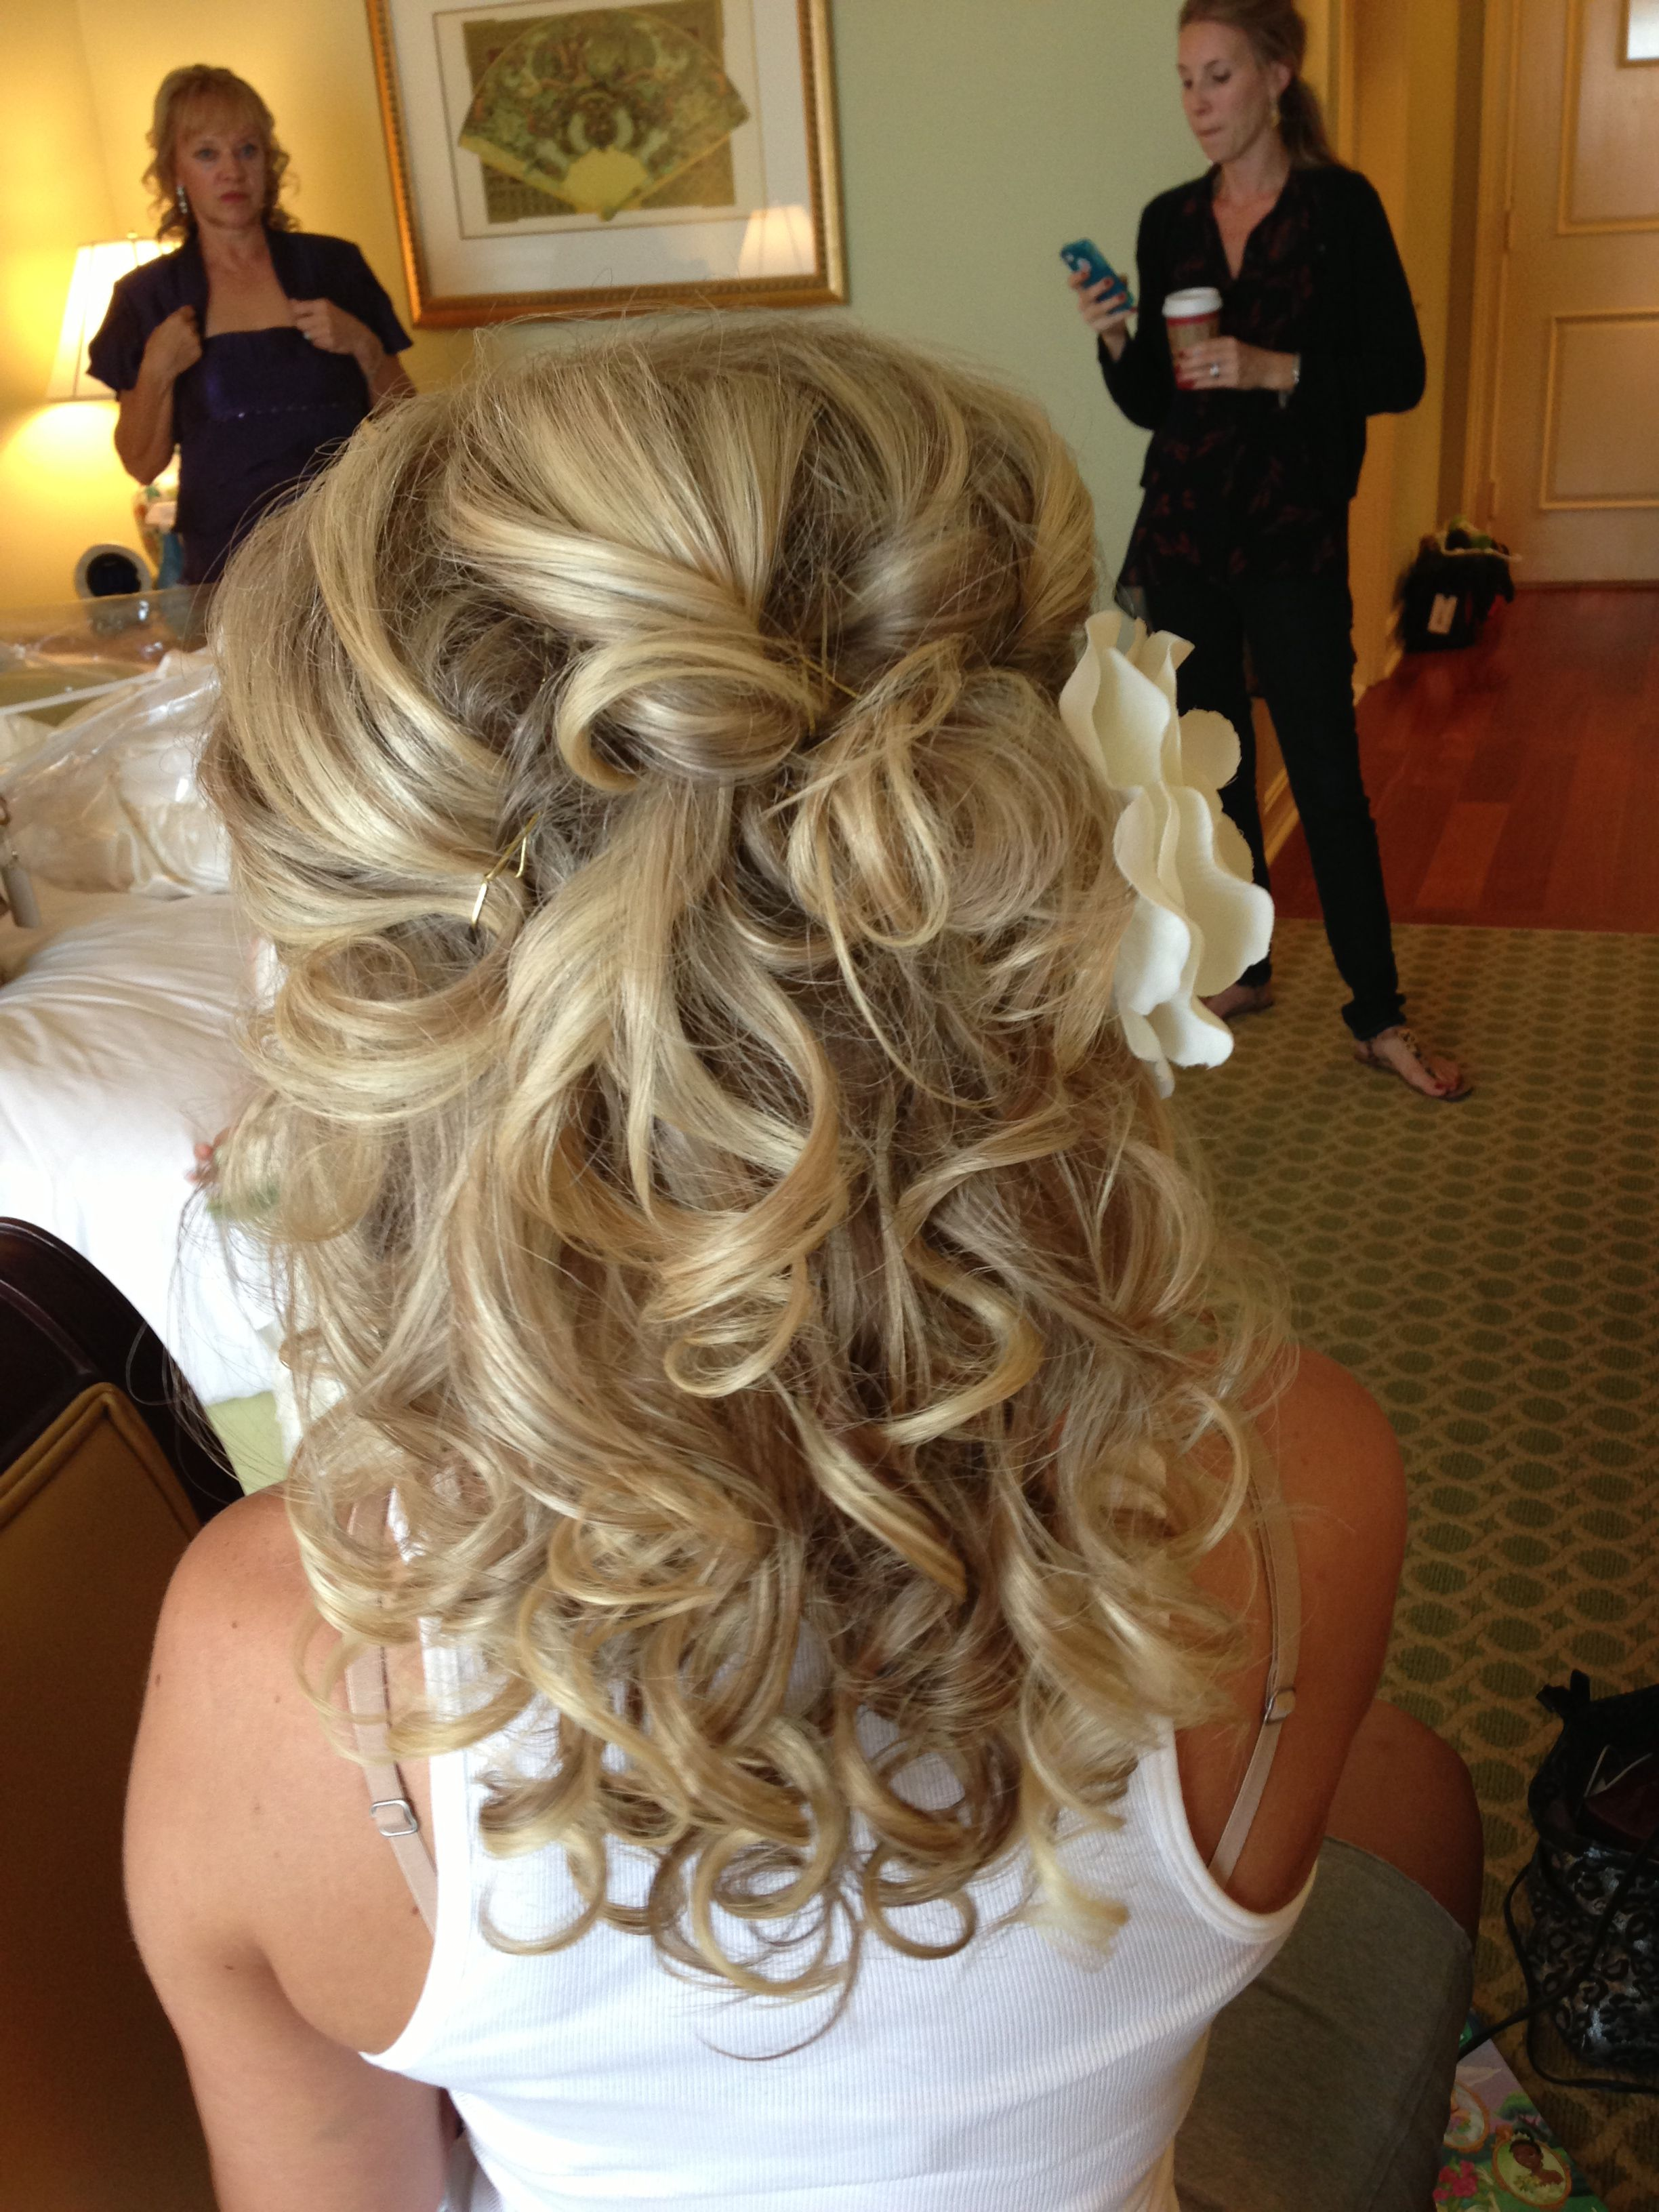 Wedding hair thatus me thanks to pooks wedding